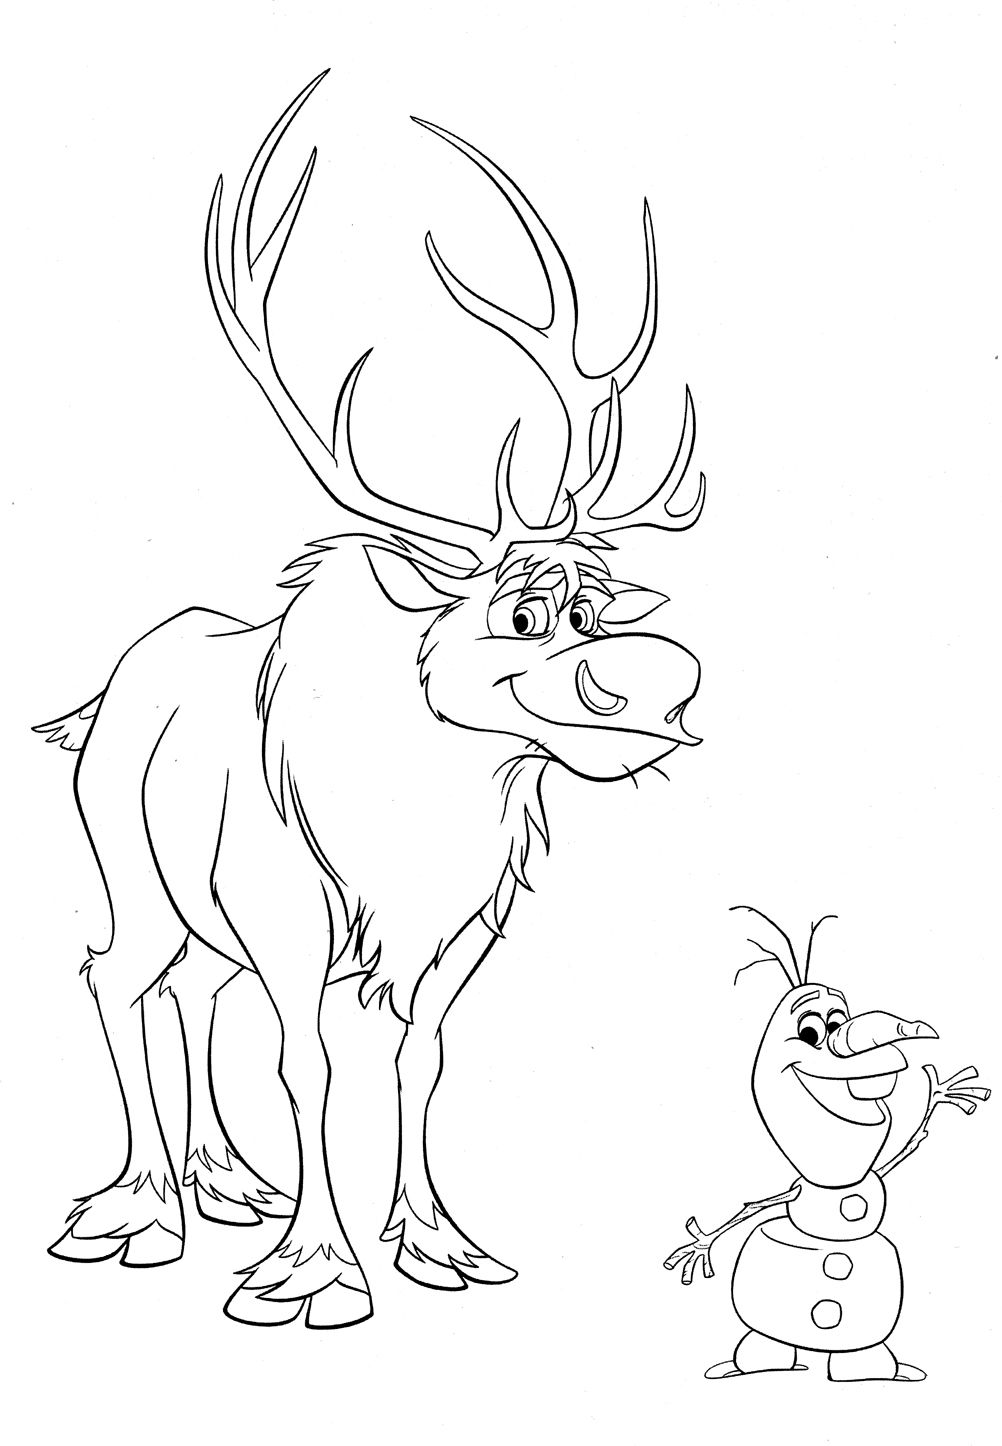 Disney Coloring Pages | Christmas Coloring Pages & More # 2 ...